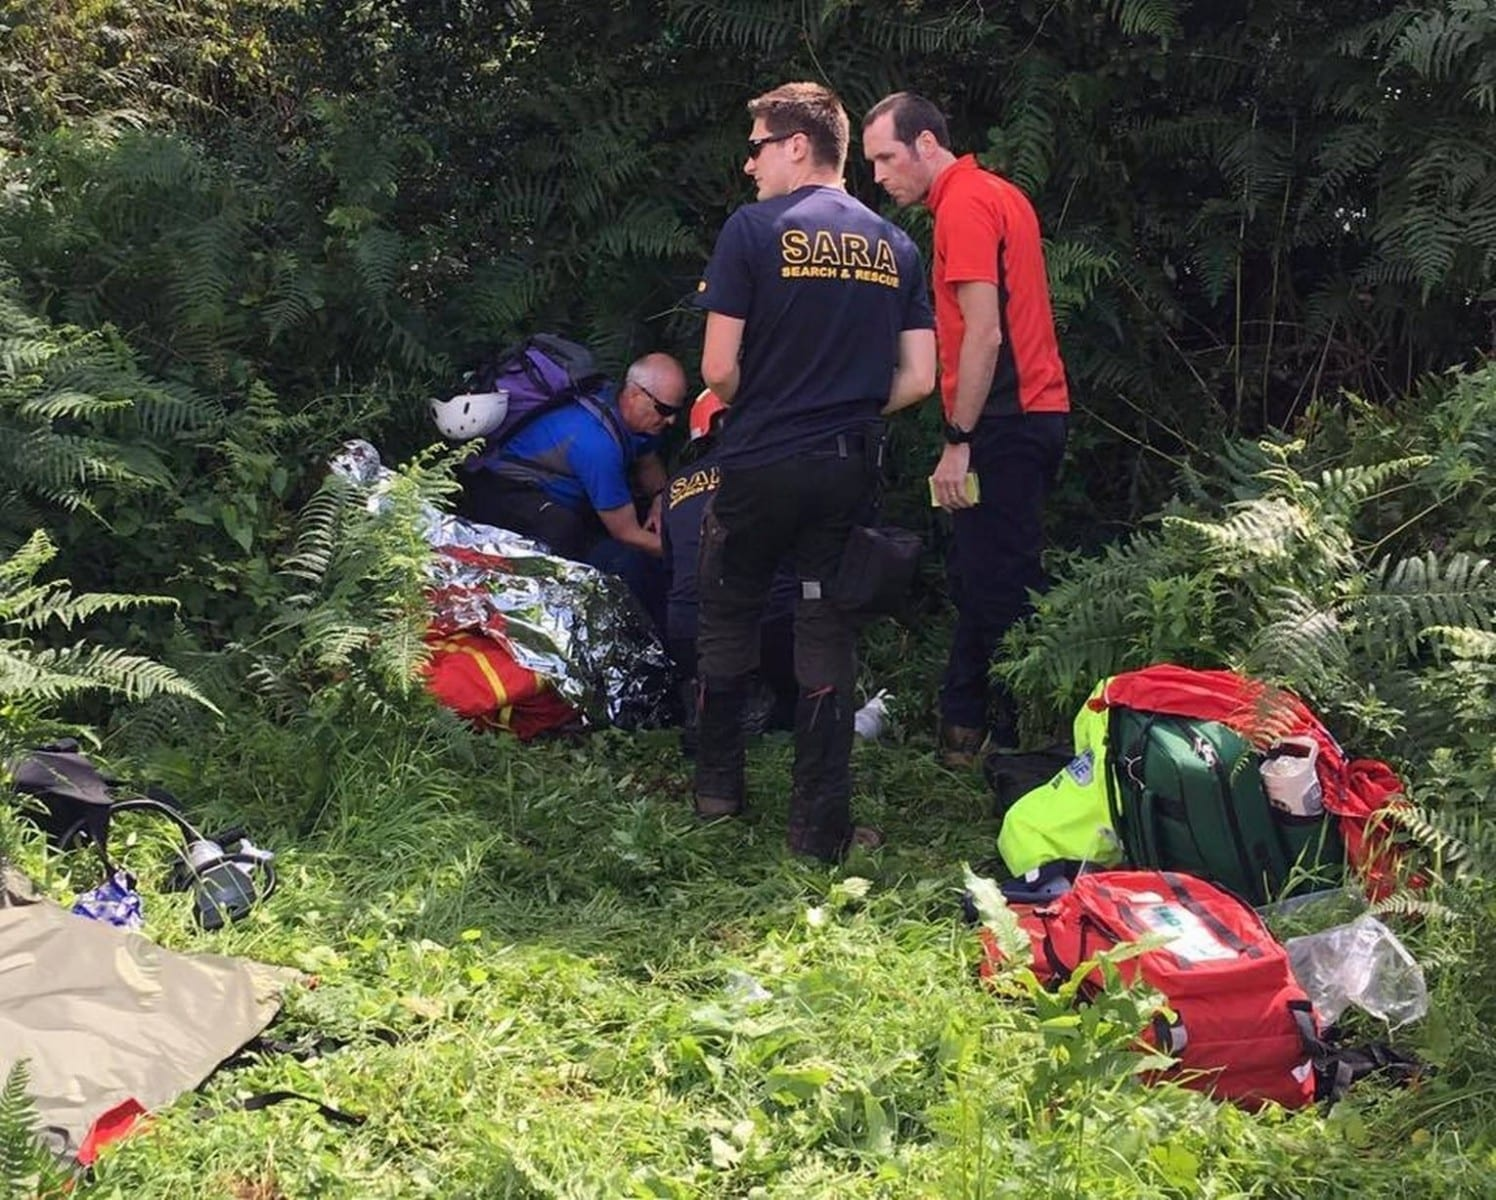 Rescuers Find 71-Year-Old Missing For Four Days Alive In The Forest Undergrowth After Massive Search